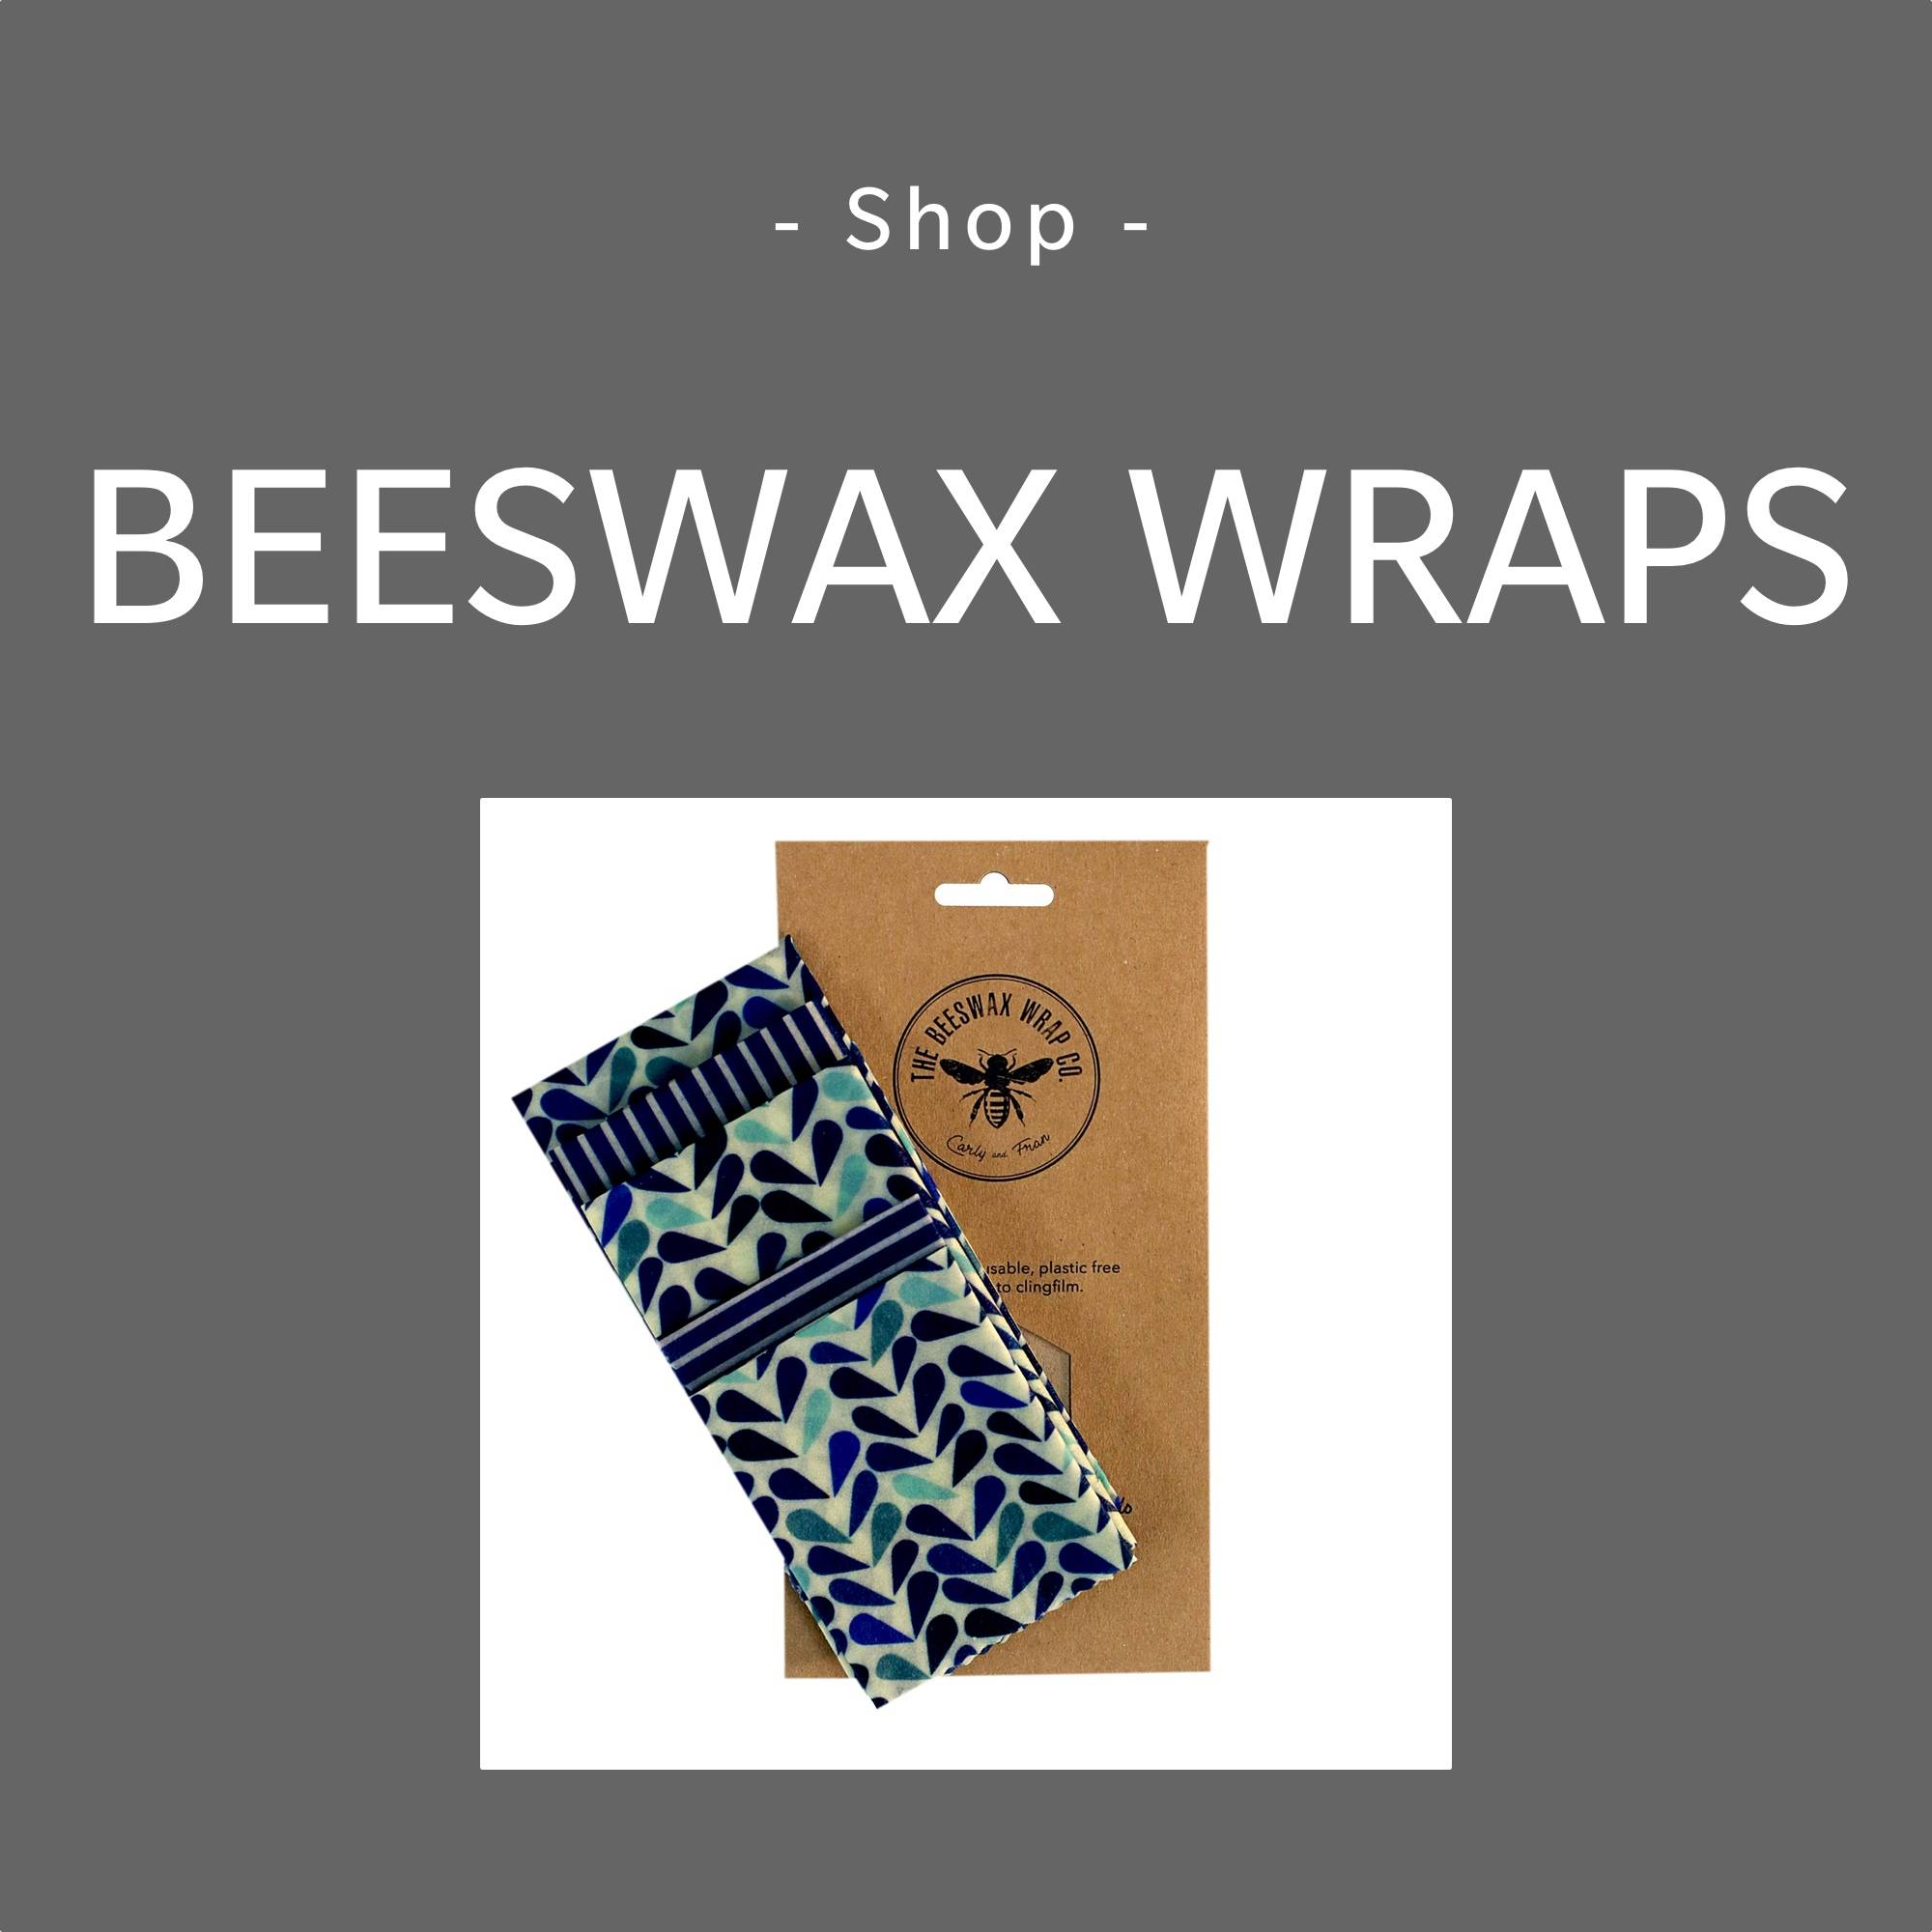 Beeswax wraps brand page